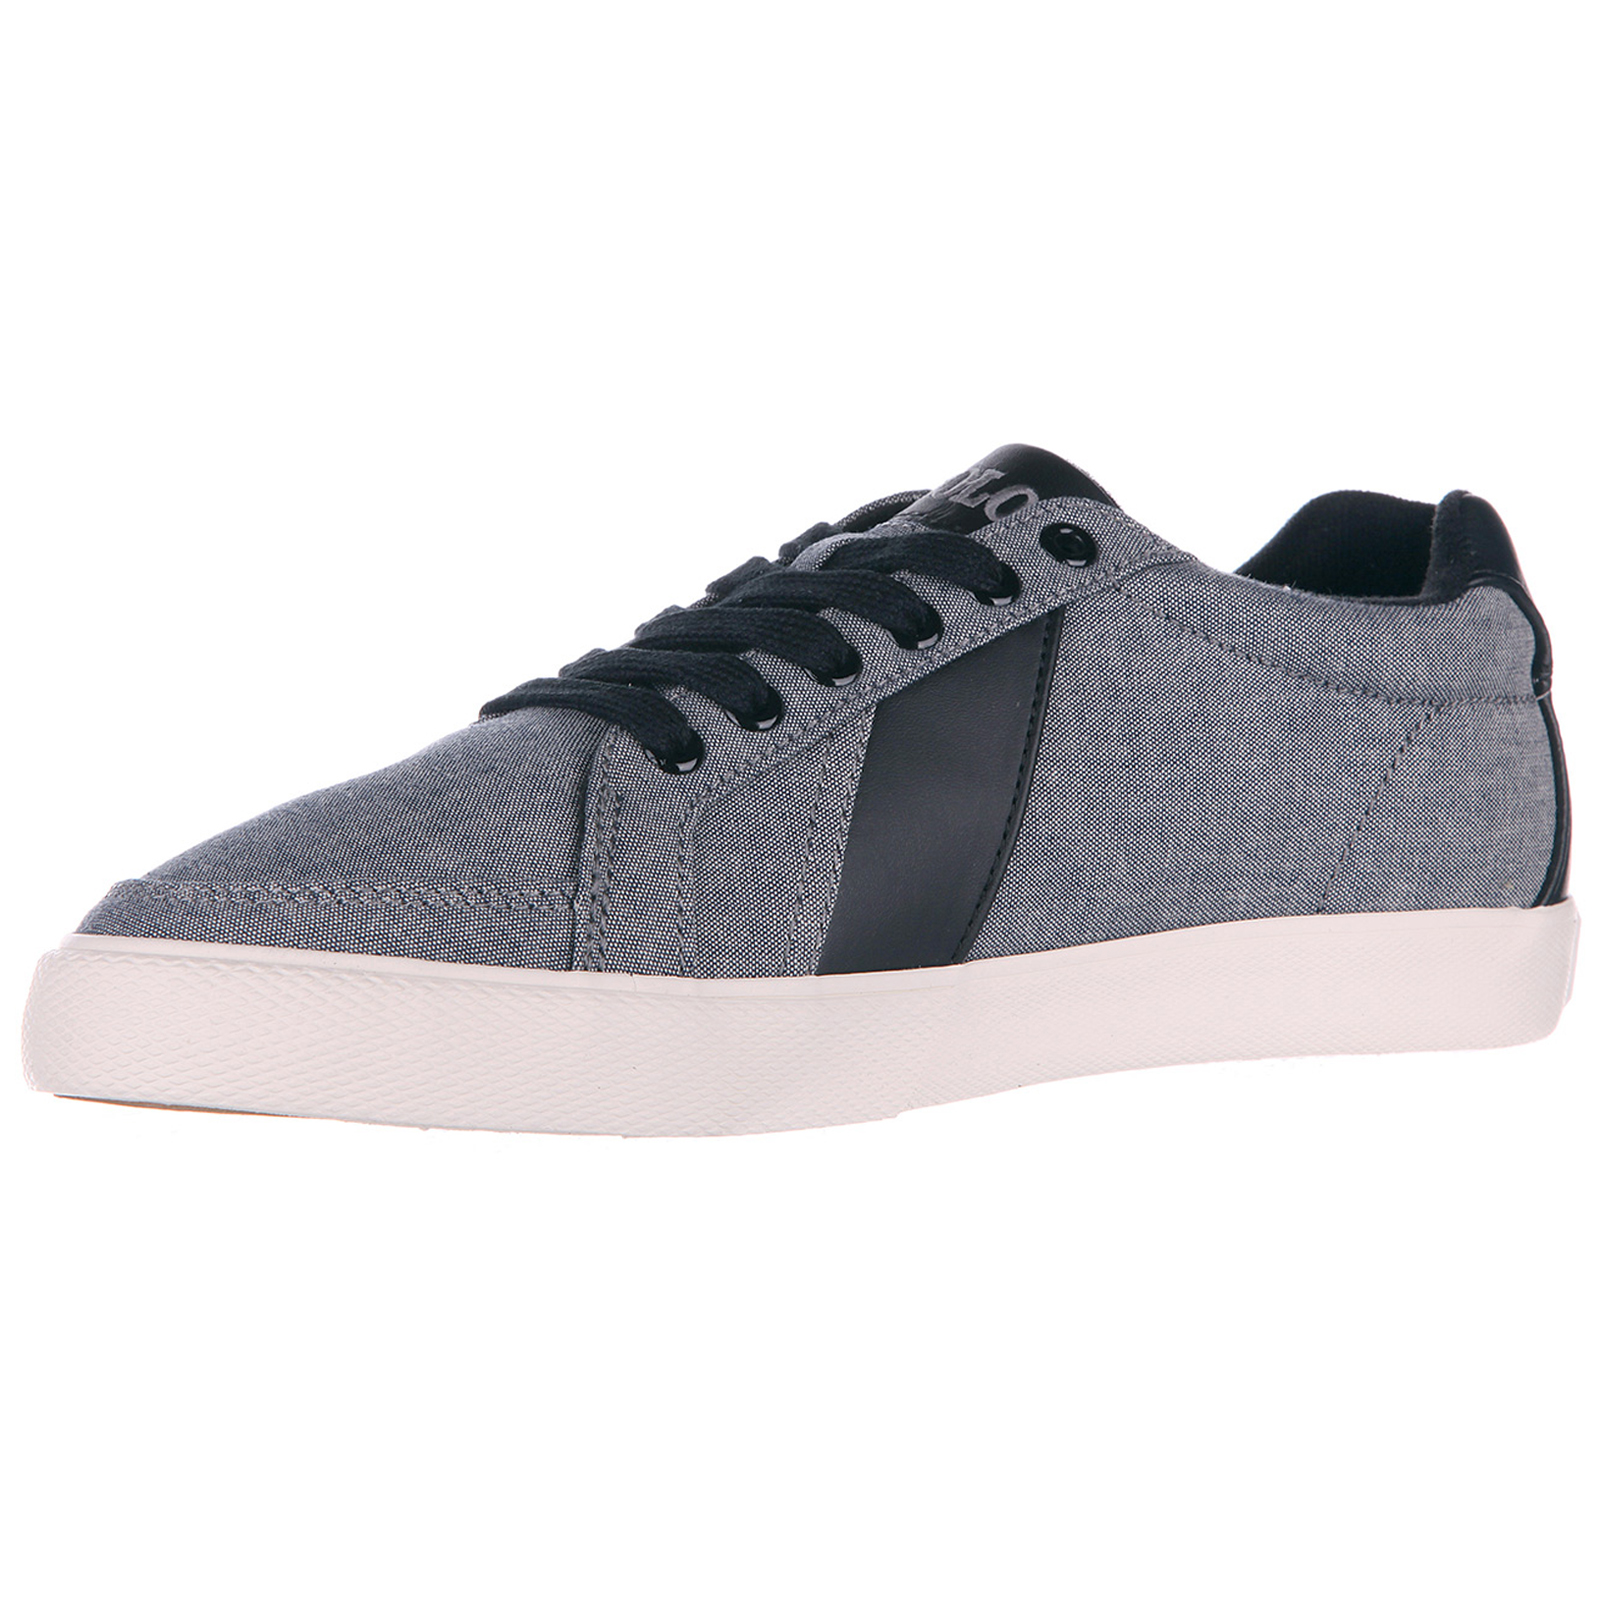 Men's shoes cotton trainers sneakers hugh